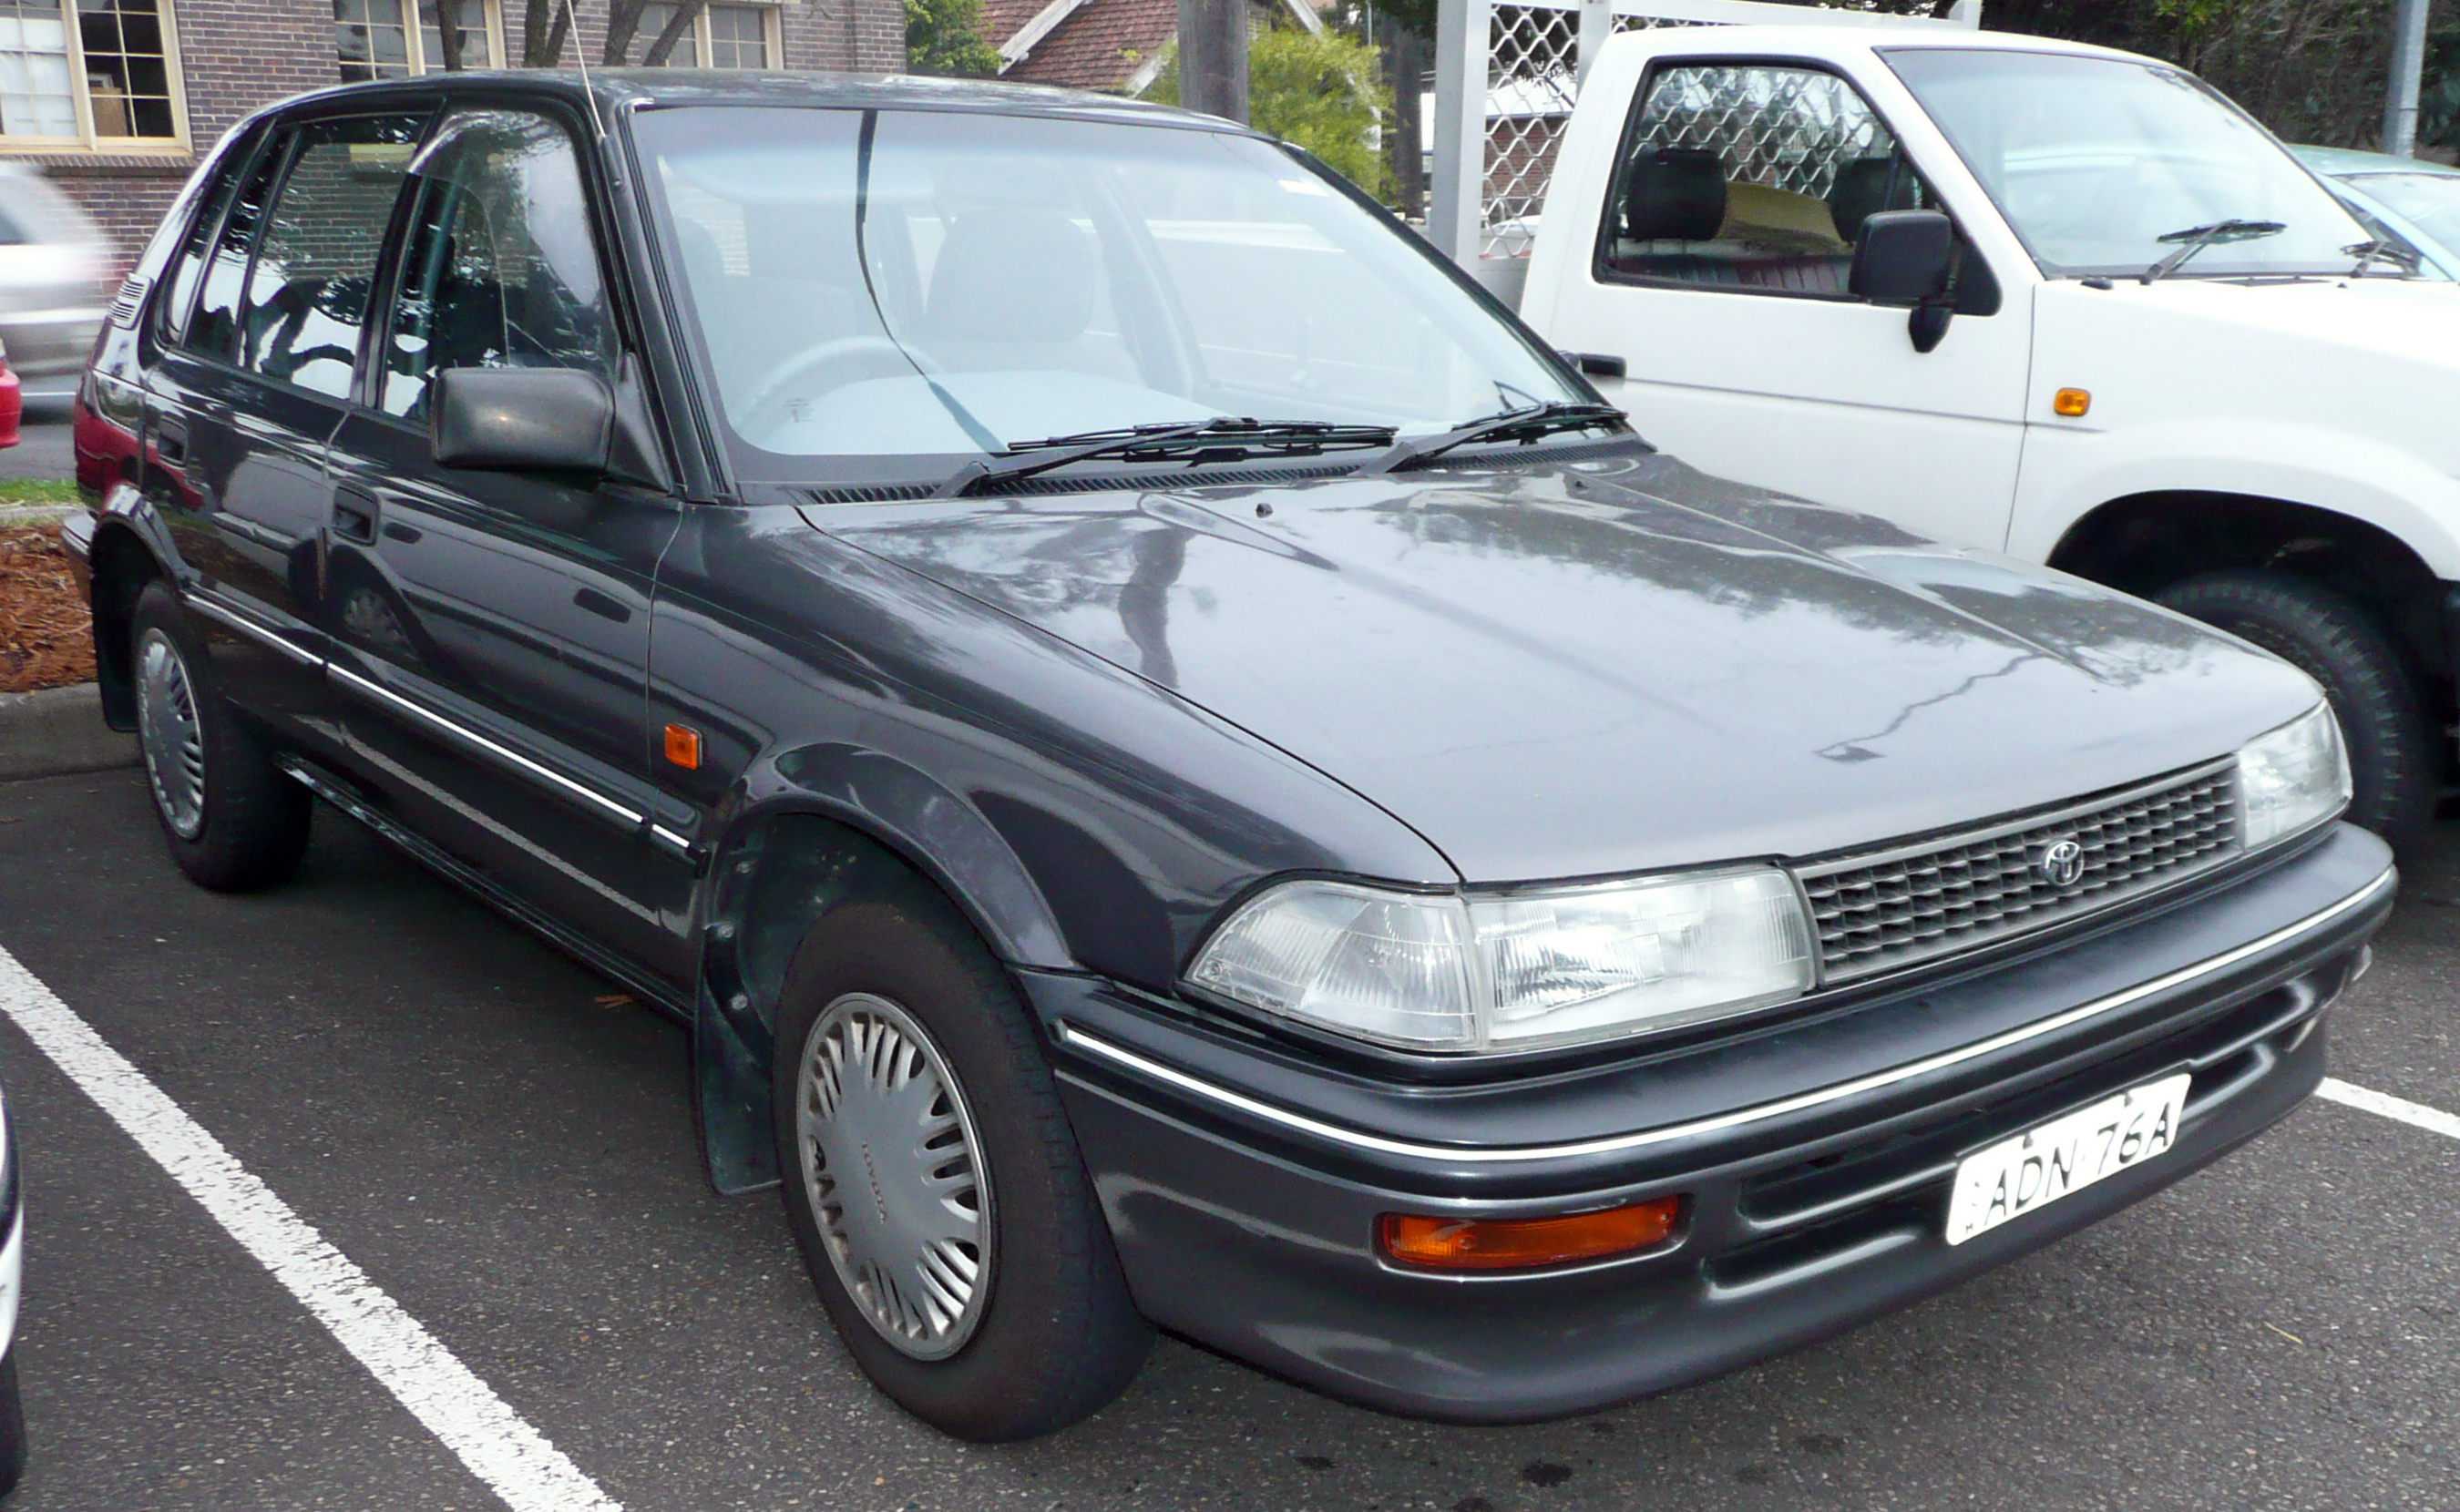 Description 1991-1992 Toyota Corolla (AE94) CSi 5-door hatchback (2009 ...